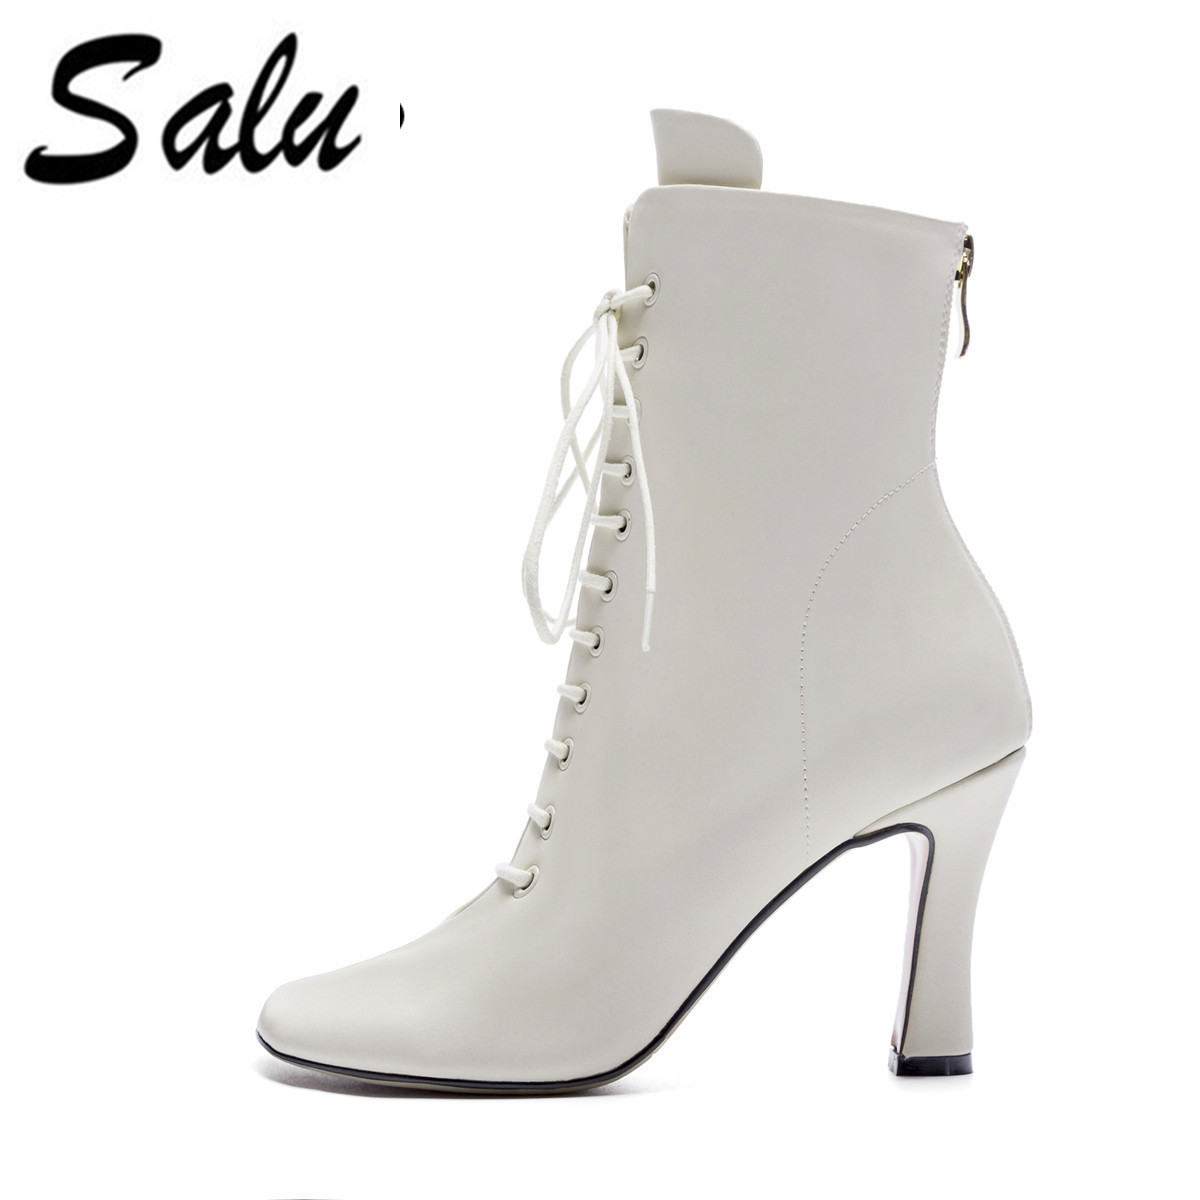 Salu 2018 new Women Ankle Boots Pointed Toe Chunky High Heel Boots Mirror Metallic Women Pumps